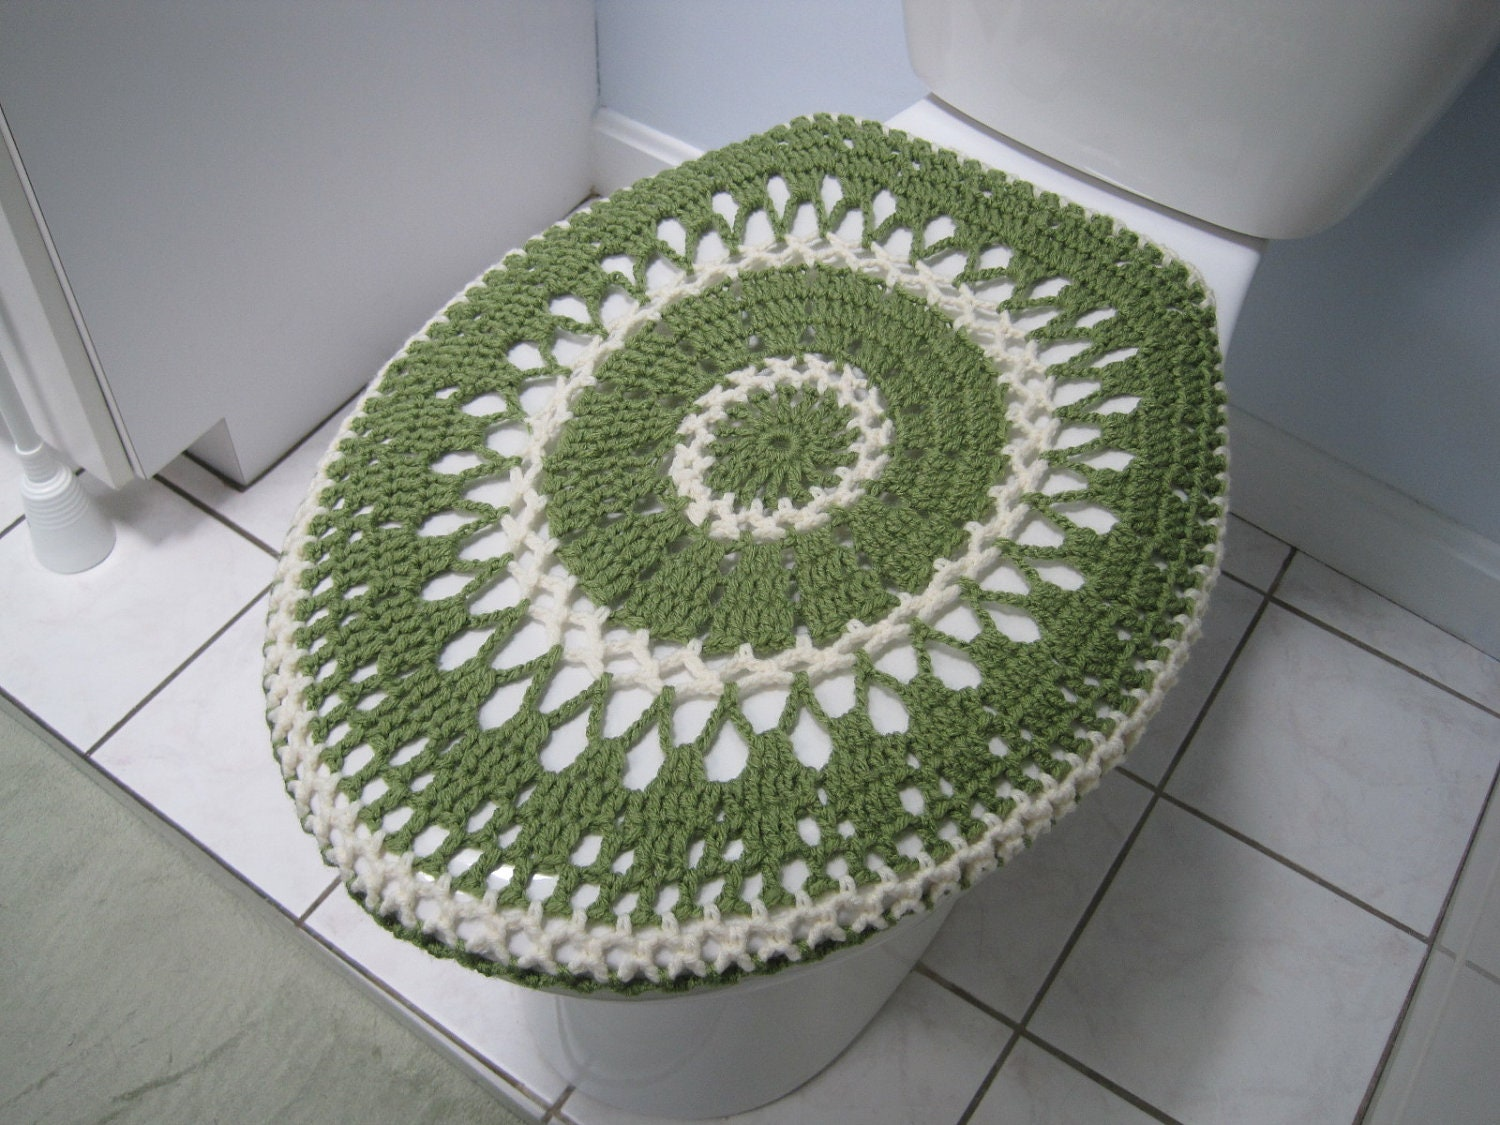 Crochet toilet seat cover or crochet toilet tank lid cover - Crochet chair cover pattern ...